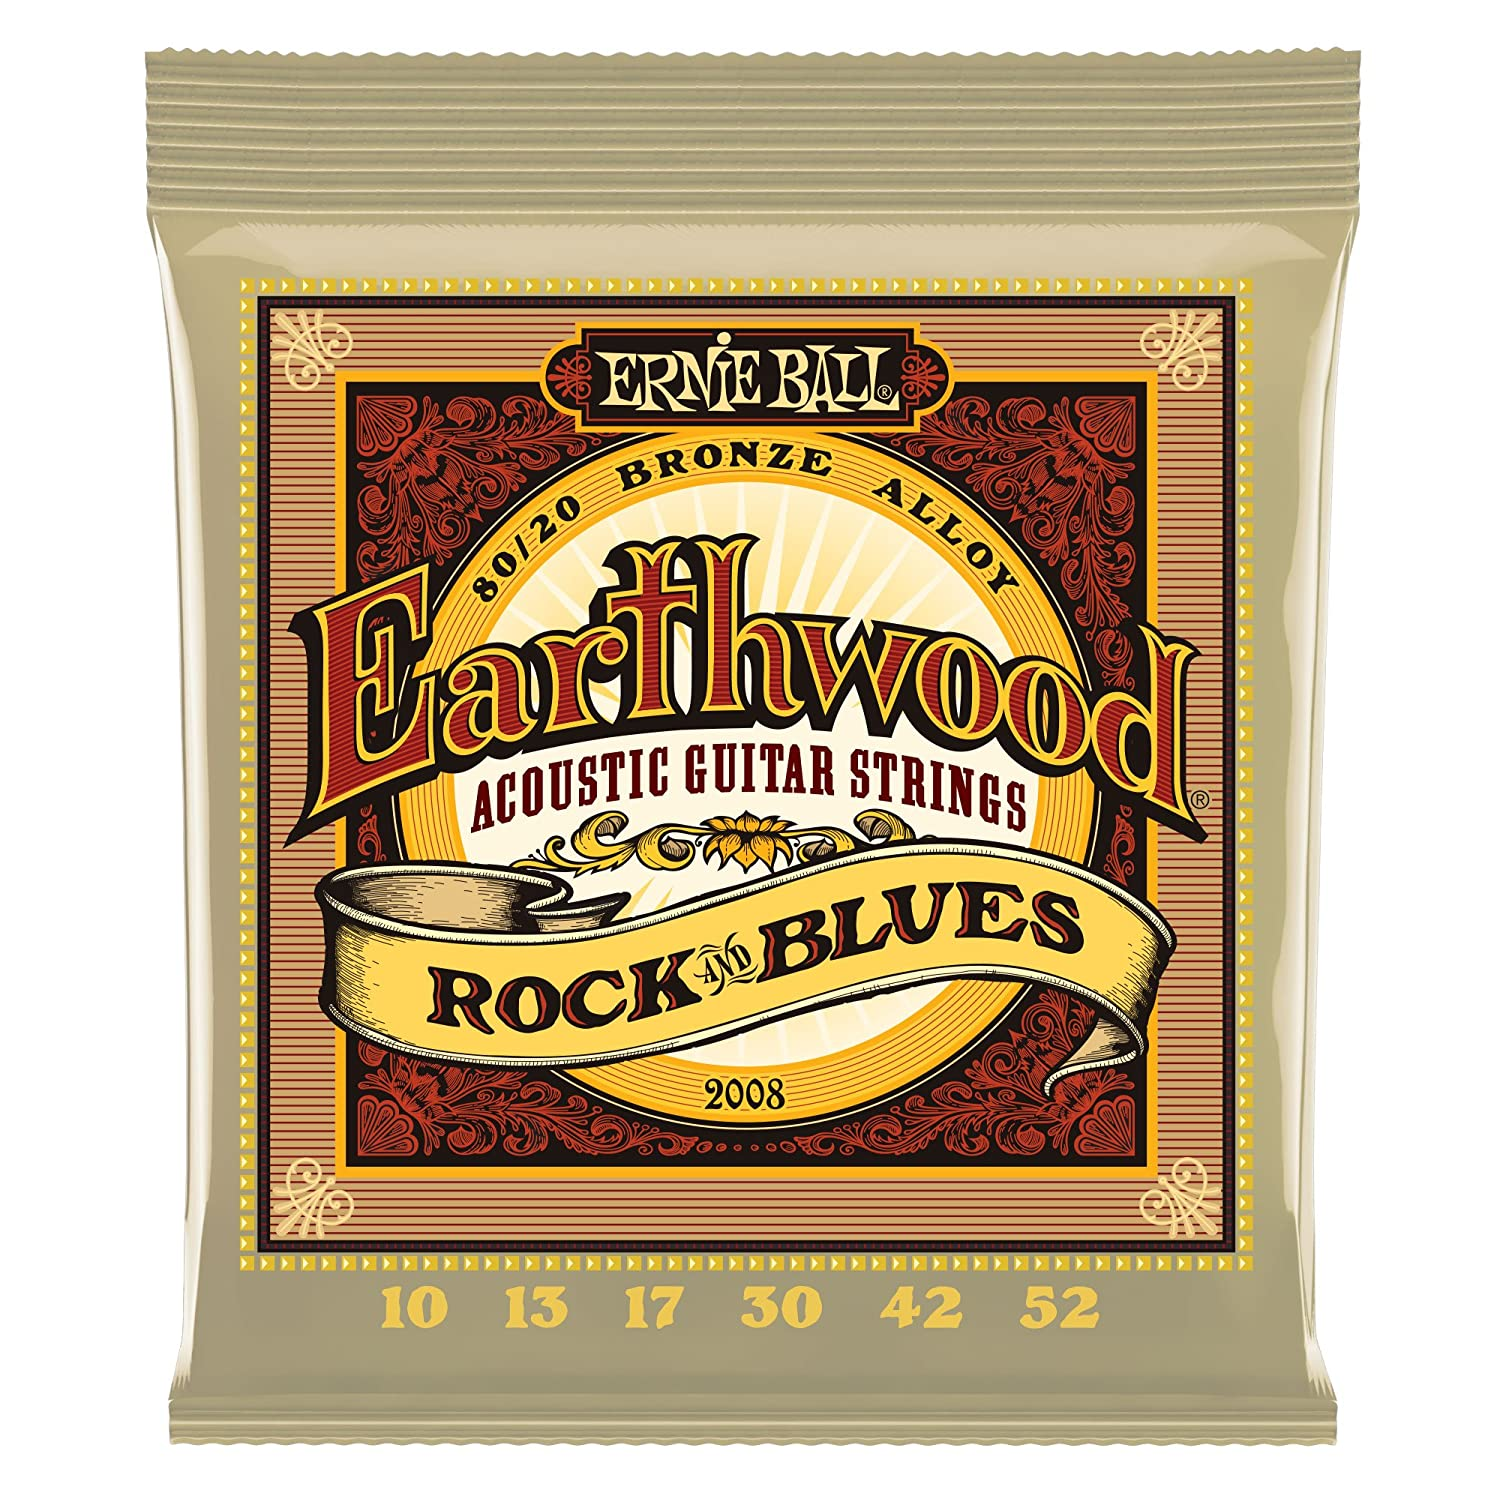 Ernie Ball 2008 Earthwood Rock and Blues 80/20 Bronze Acoustic String Set with plain G (10-52) Ernie Ball Music Man P02008